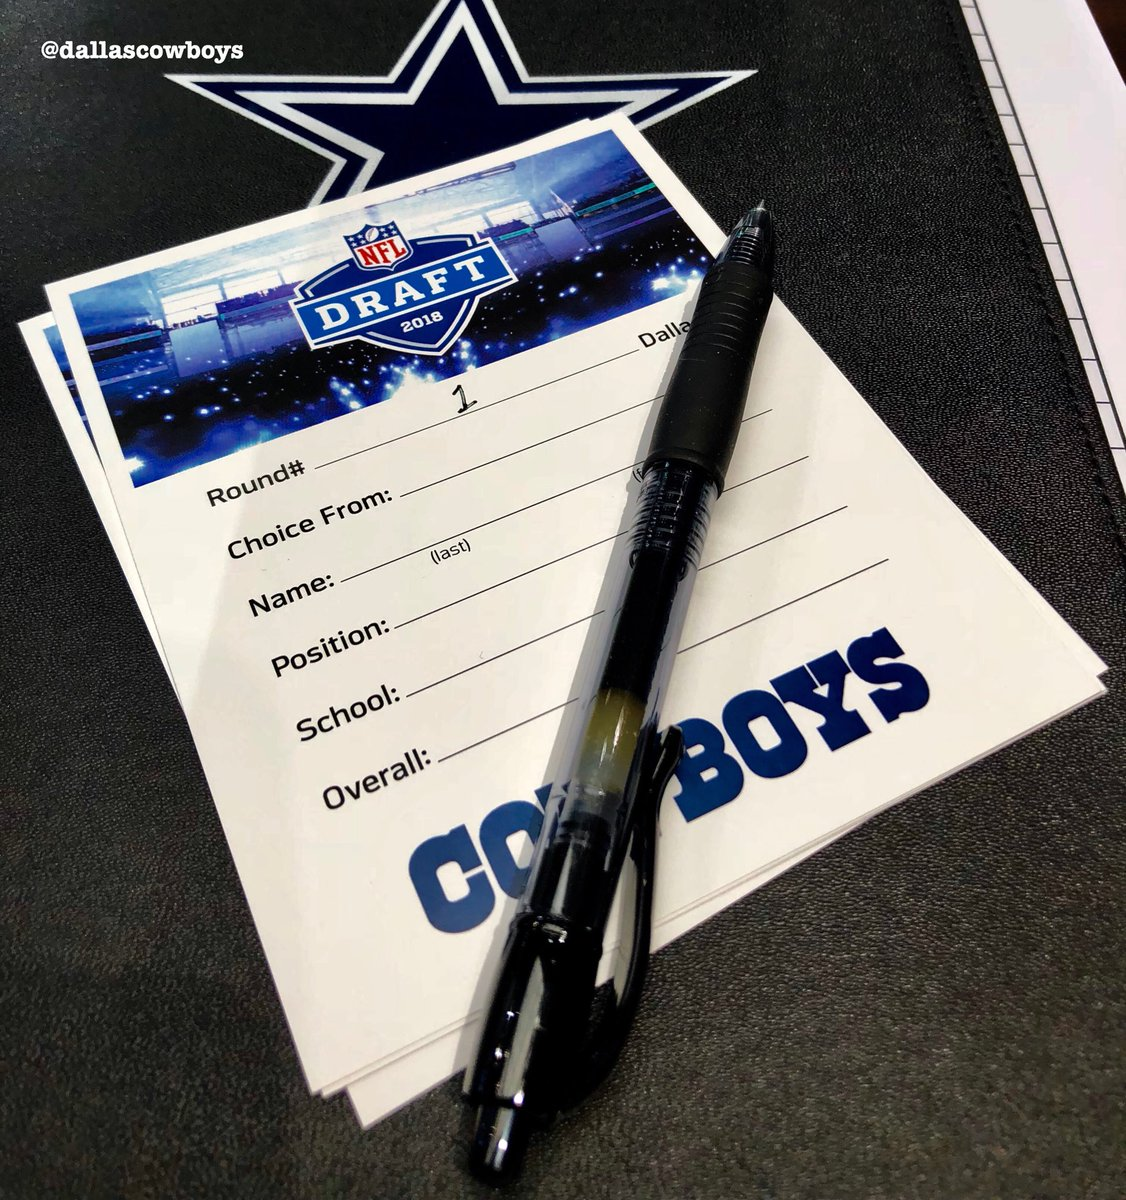 Who will it be? #CowboysDraft